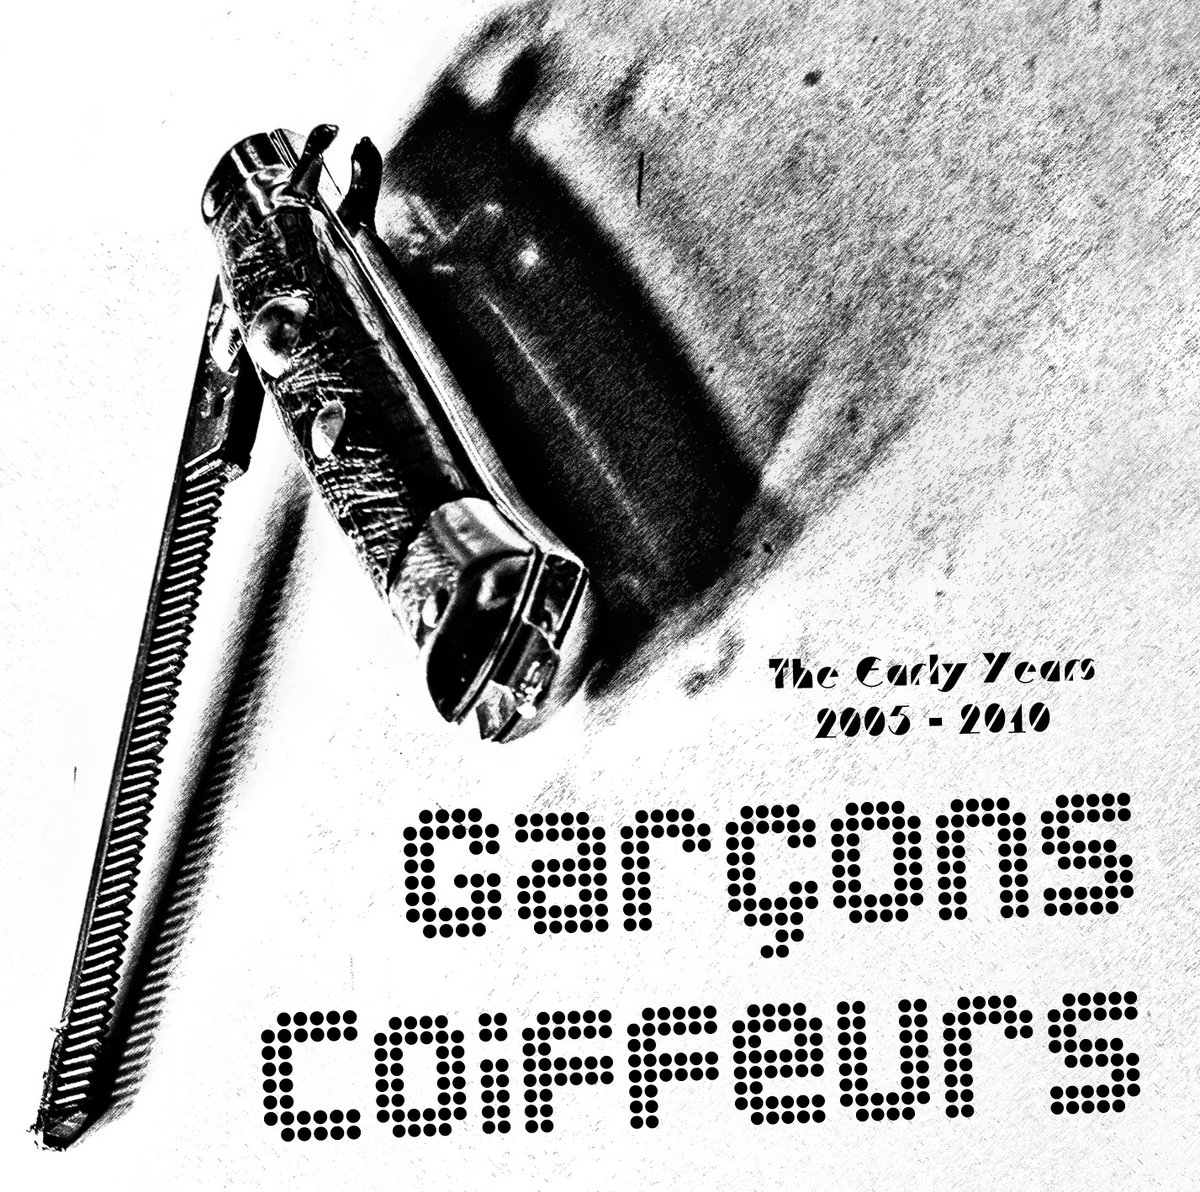 The Early Years | Garçons Coiffeurs